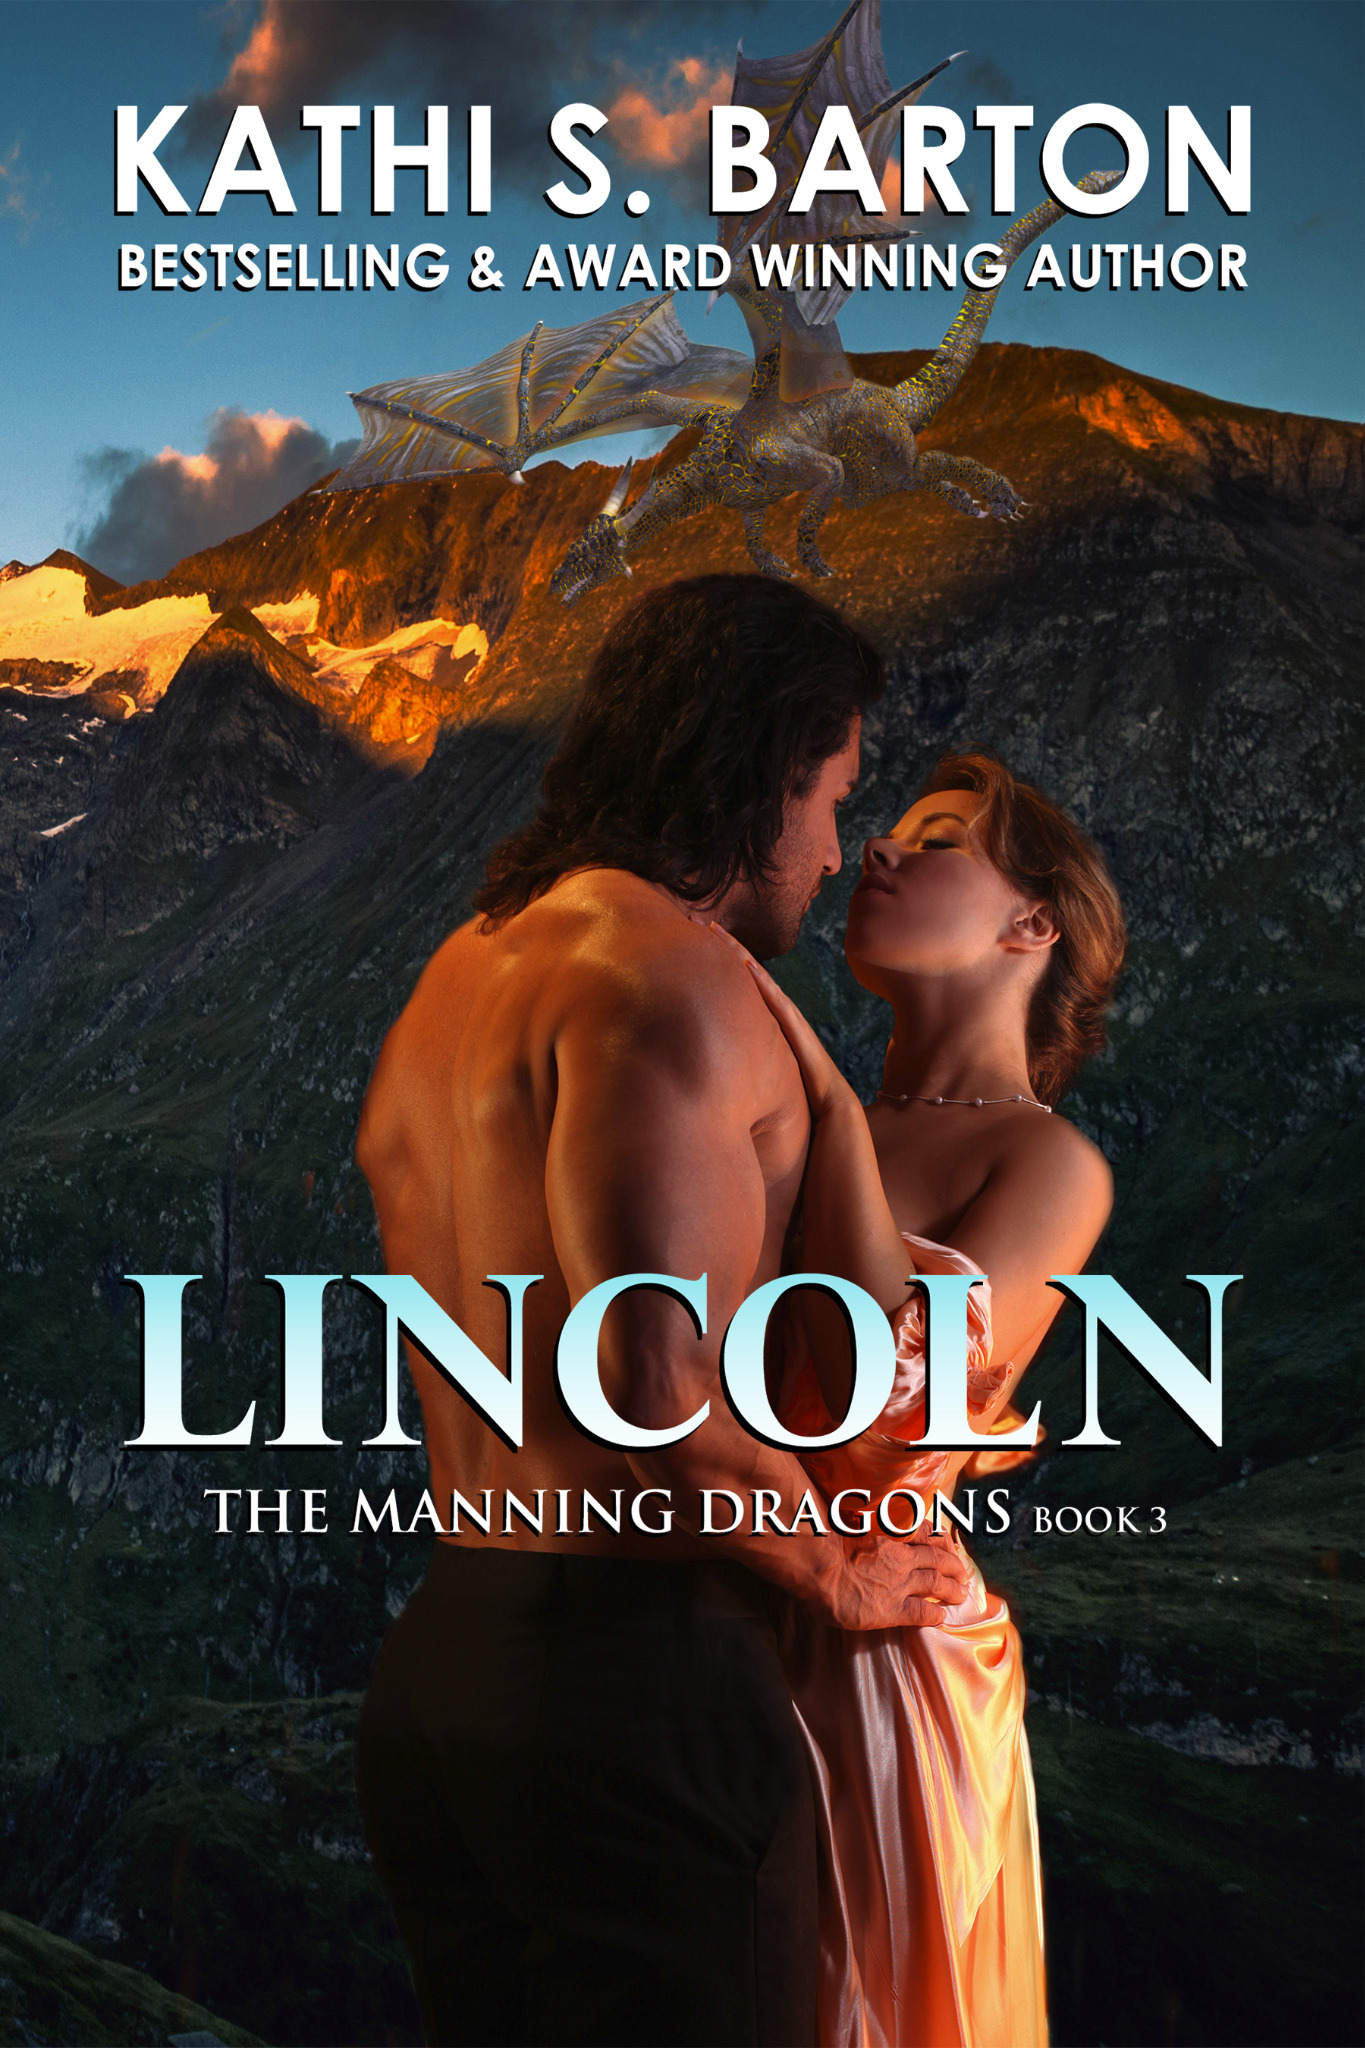 Lincoln - The Manning Dragons Book 3